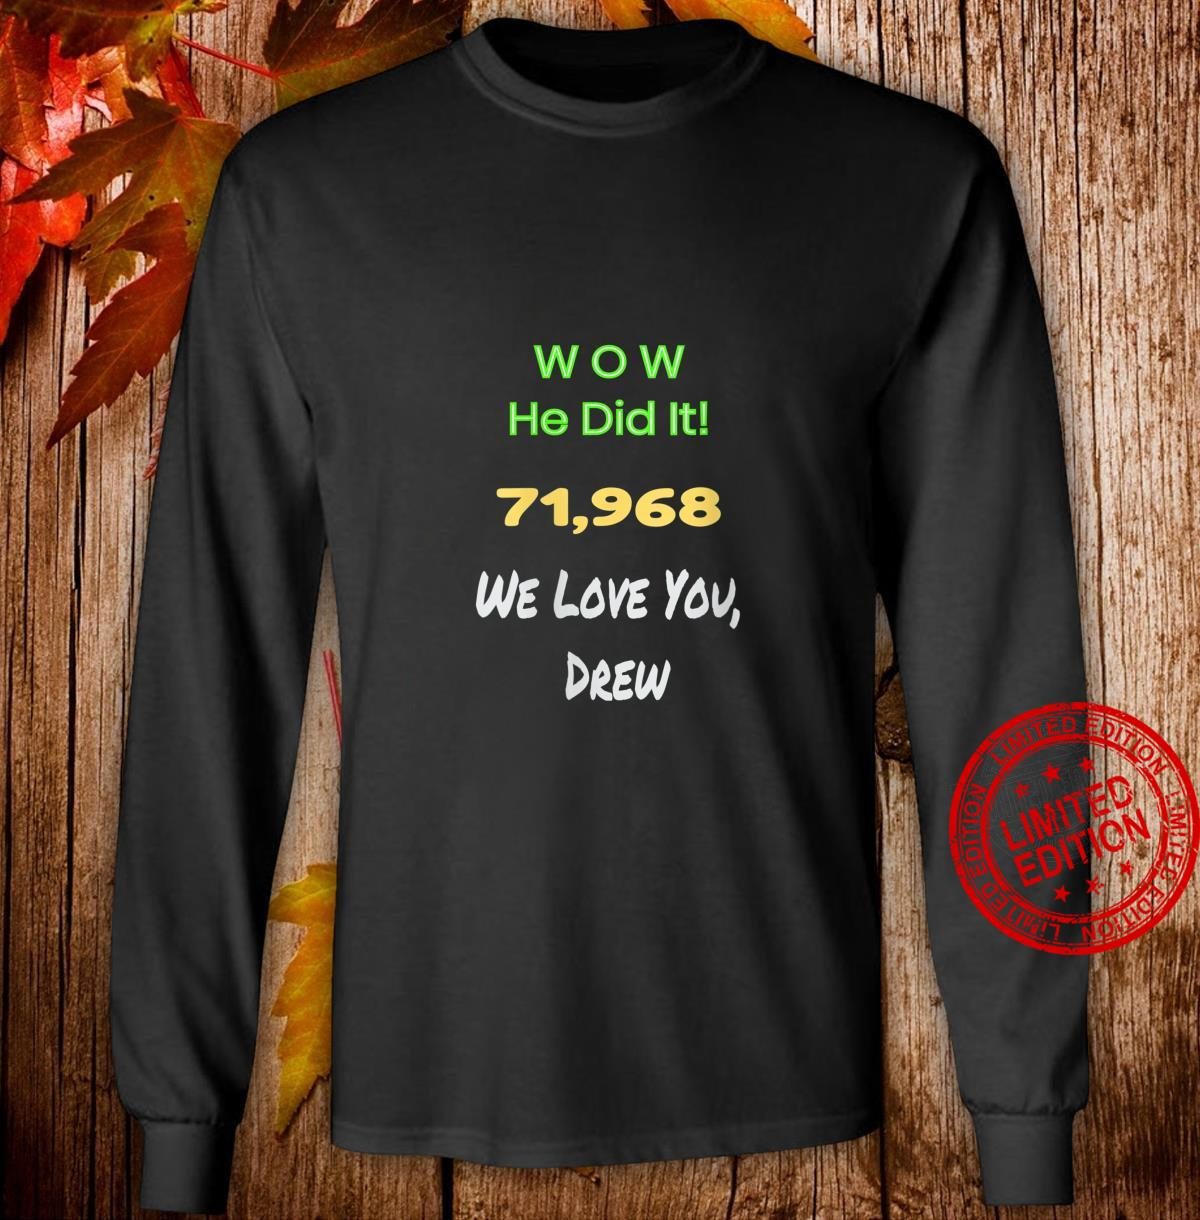 Womens Awesome Wow He did it celebrating Drew's record game Shirt long sleeved